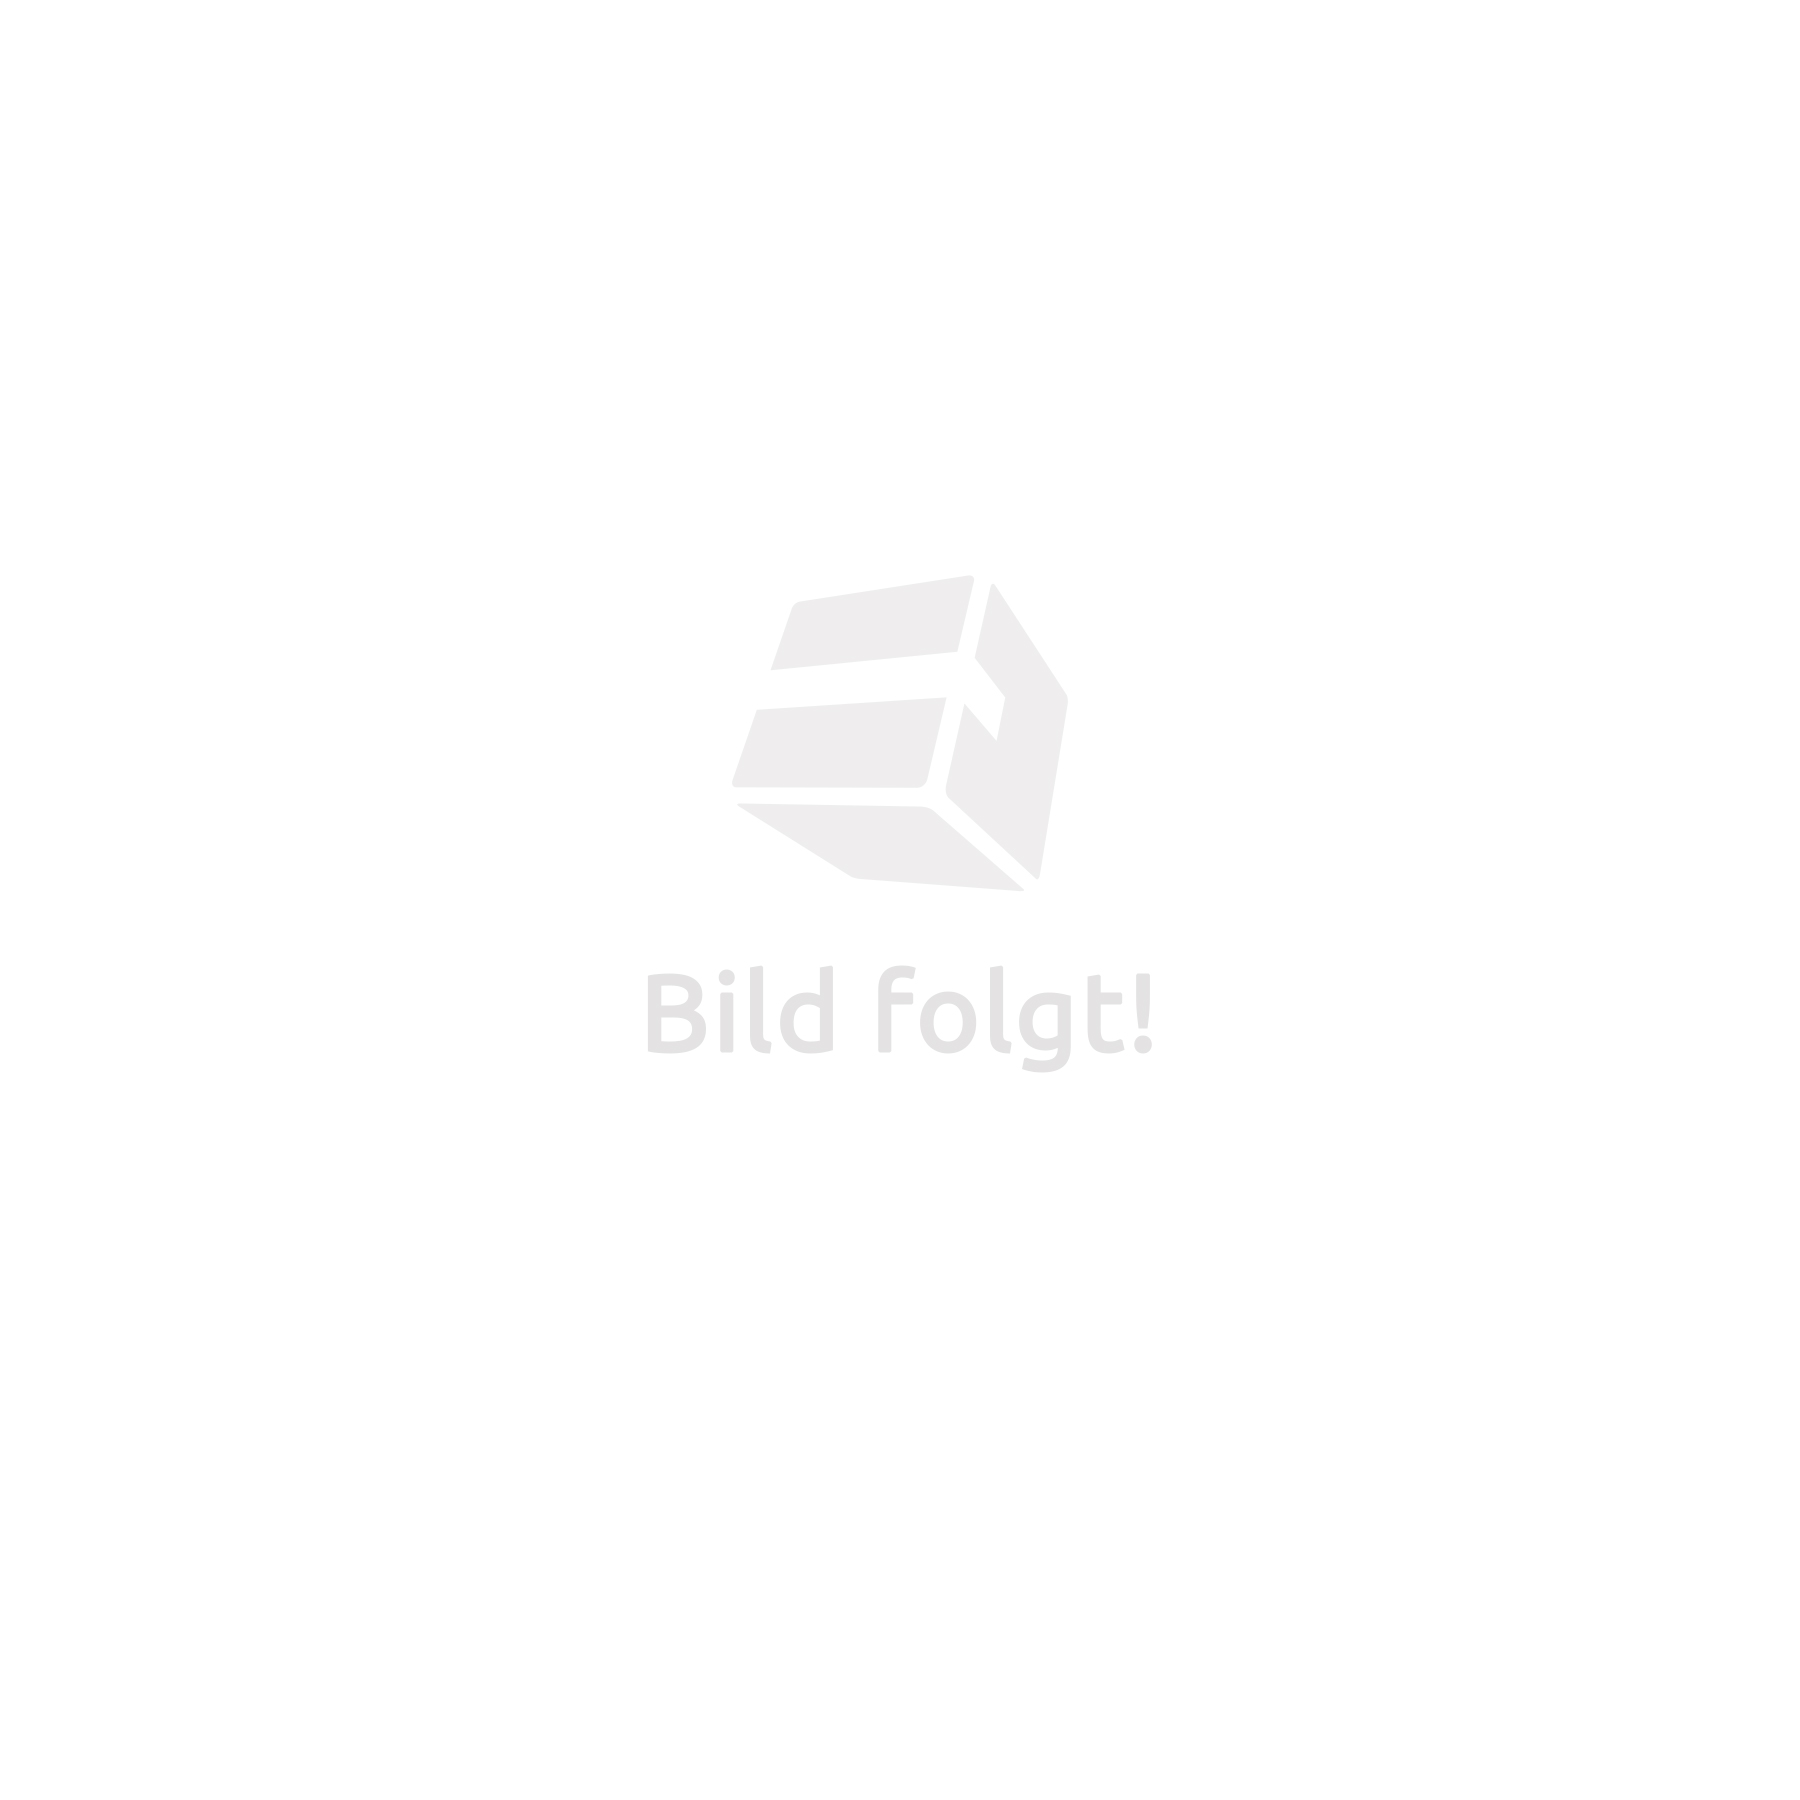 tabouret pliant banc cube pouf d pliable coffre si ge de rangement 76x38x38cm ebay. Black Bedroom Furniture Sets. Home Design Ideas